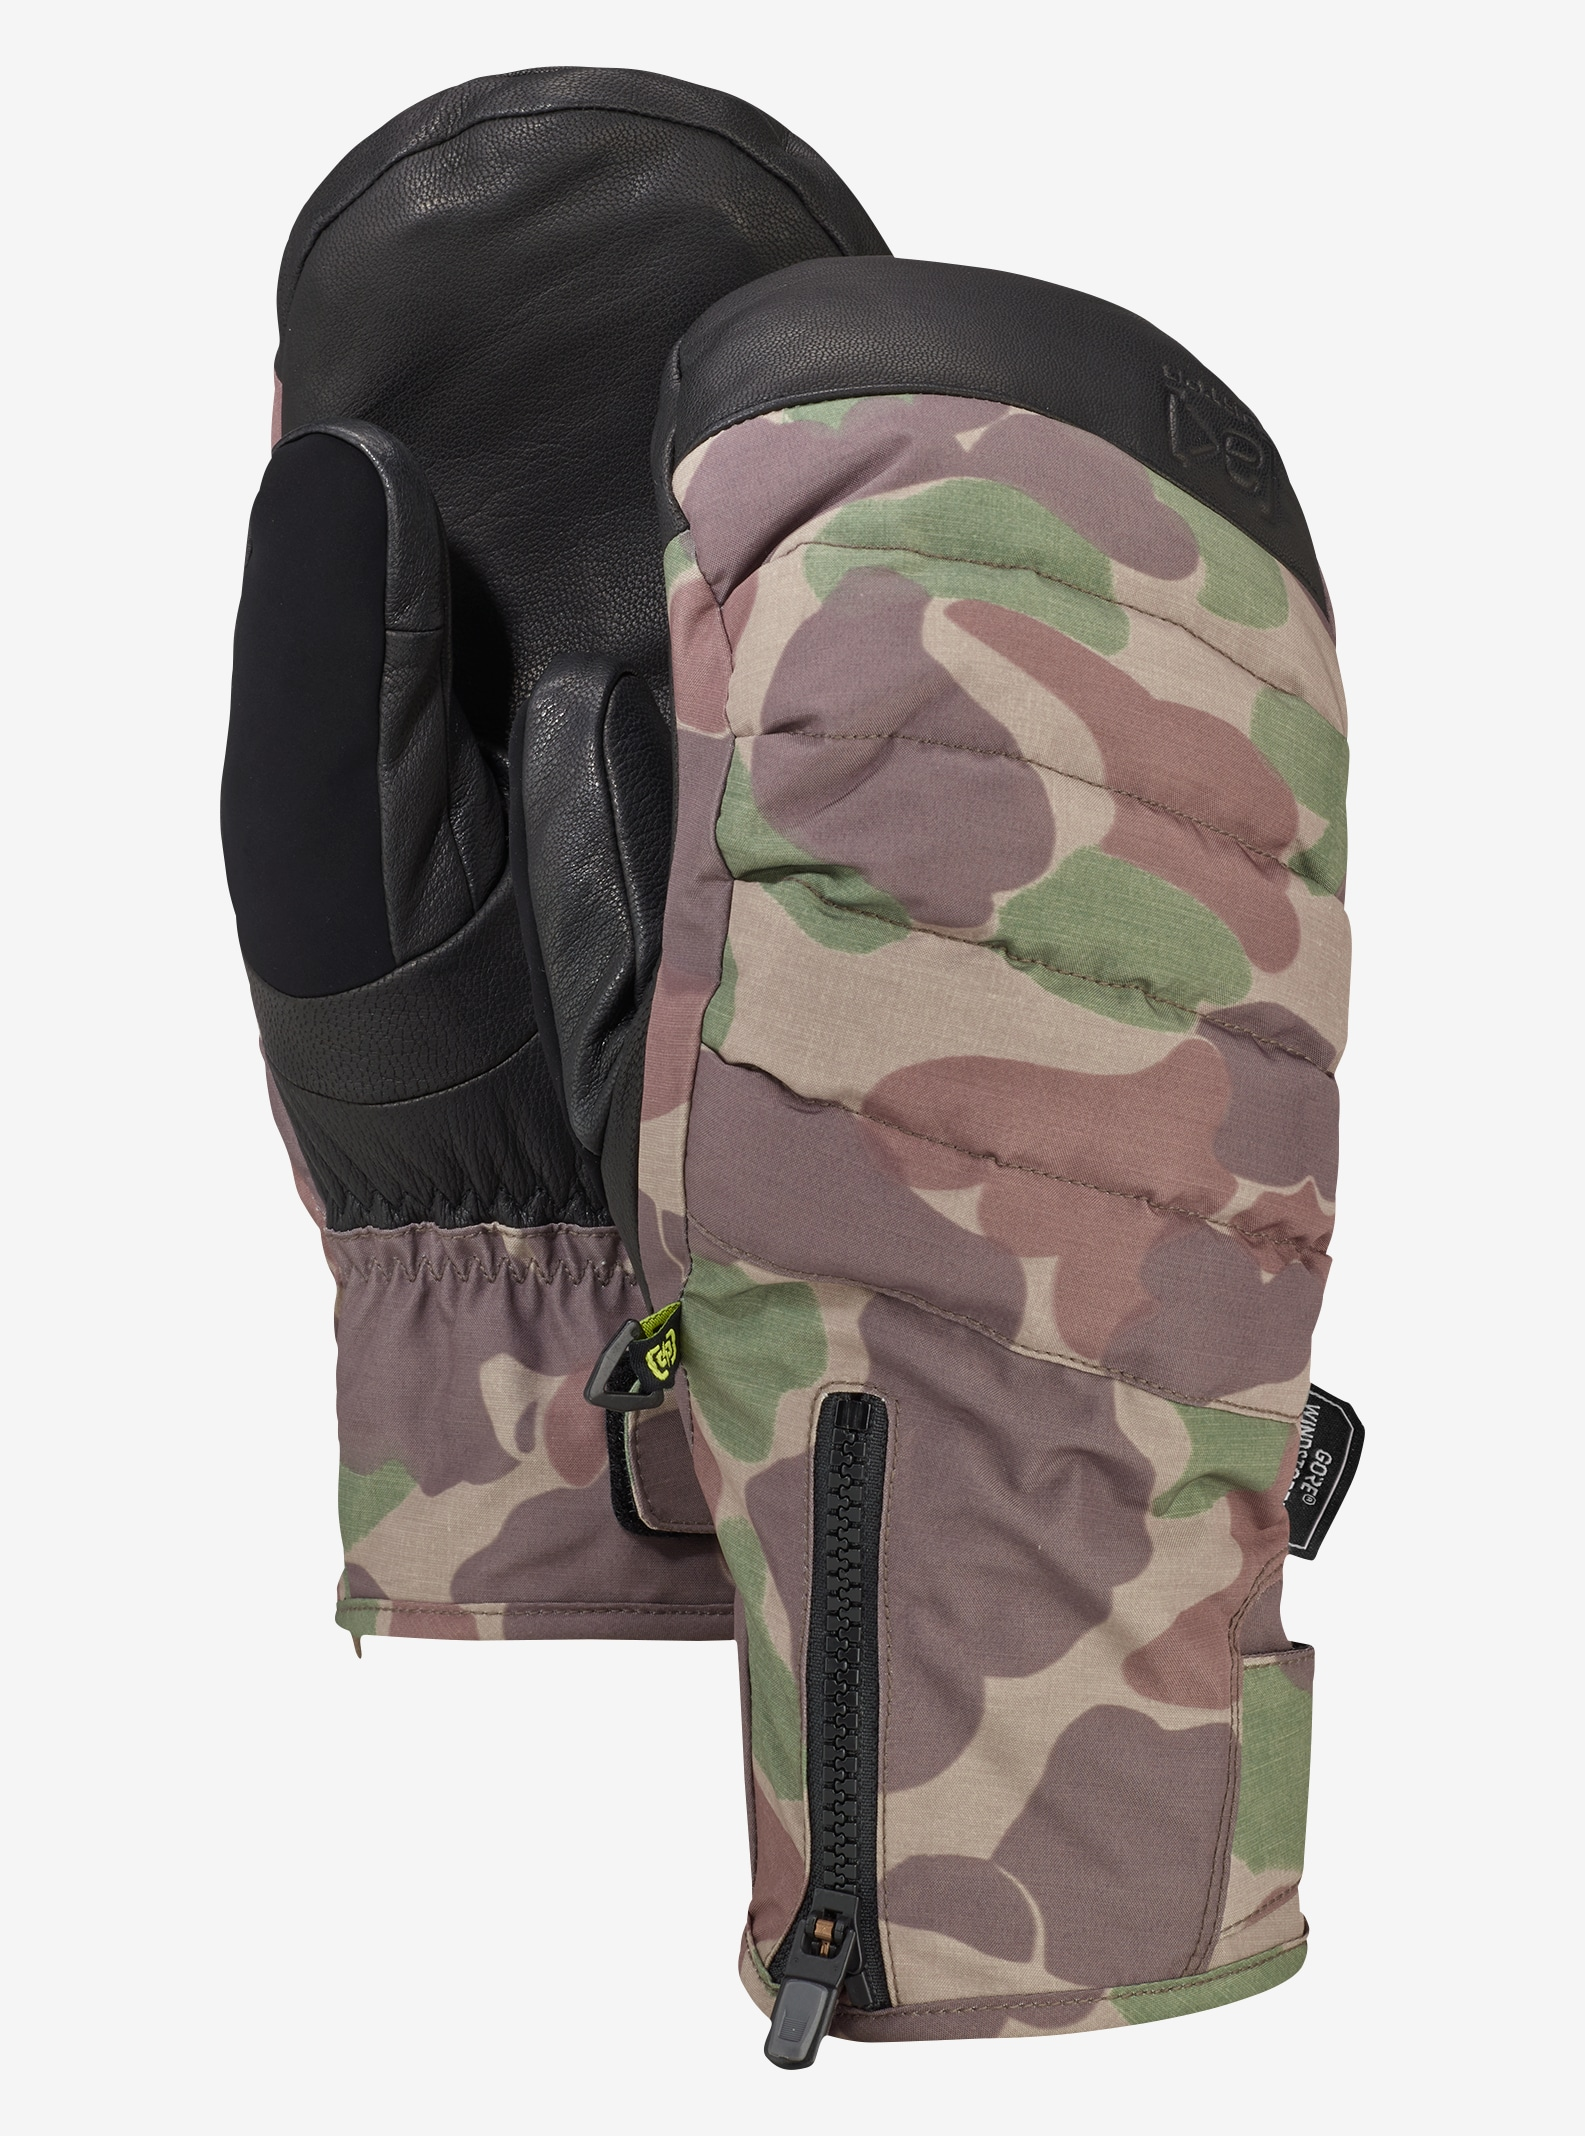 Burton [ak] Oven Mitt shown in Kodiak Camo